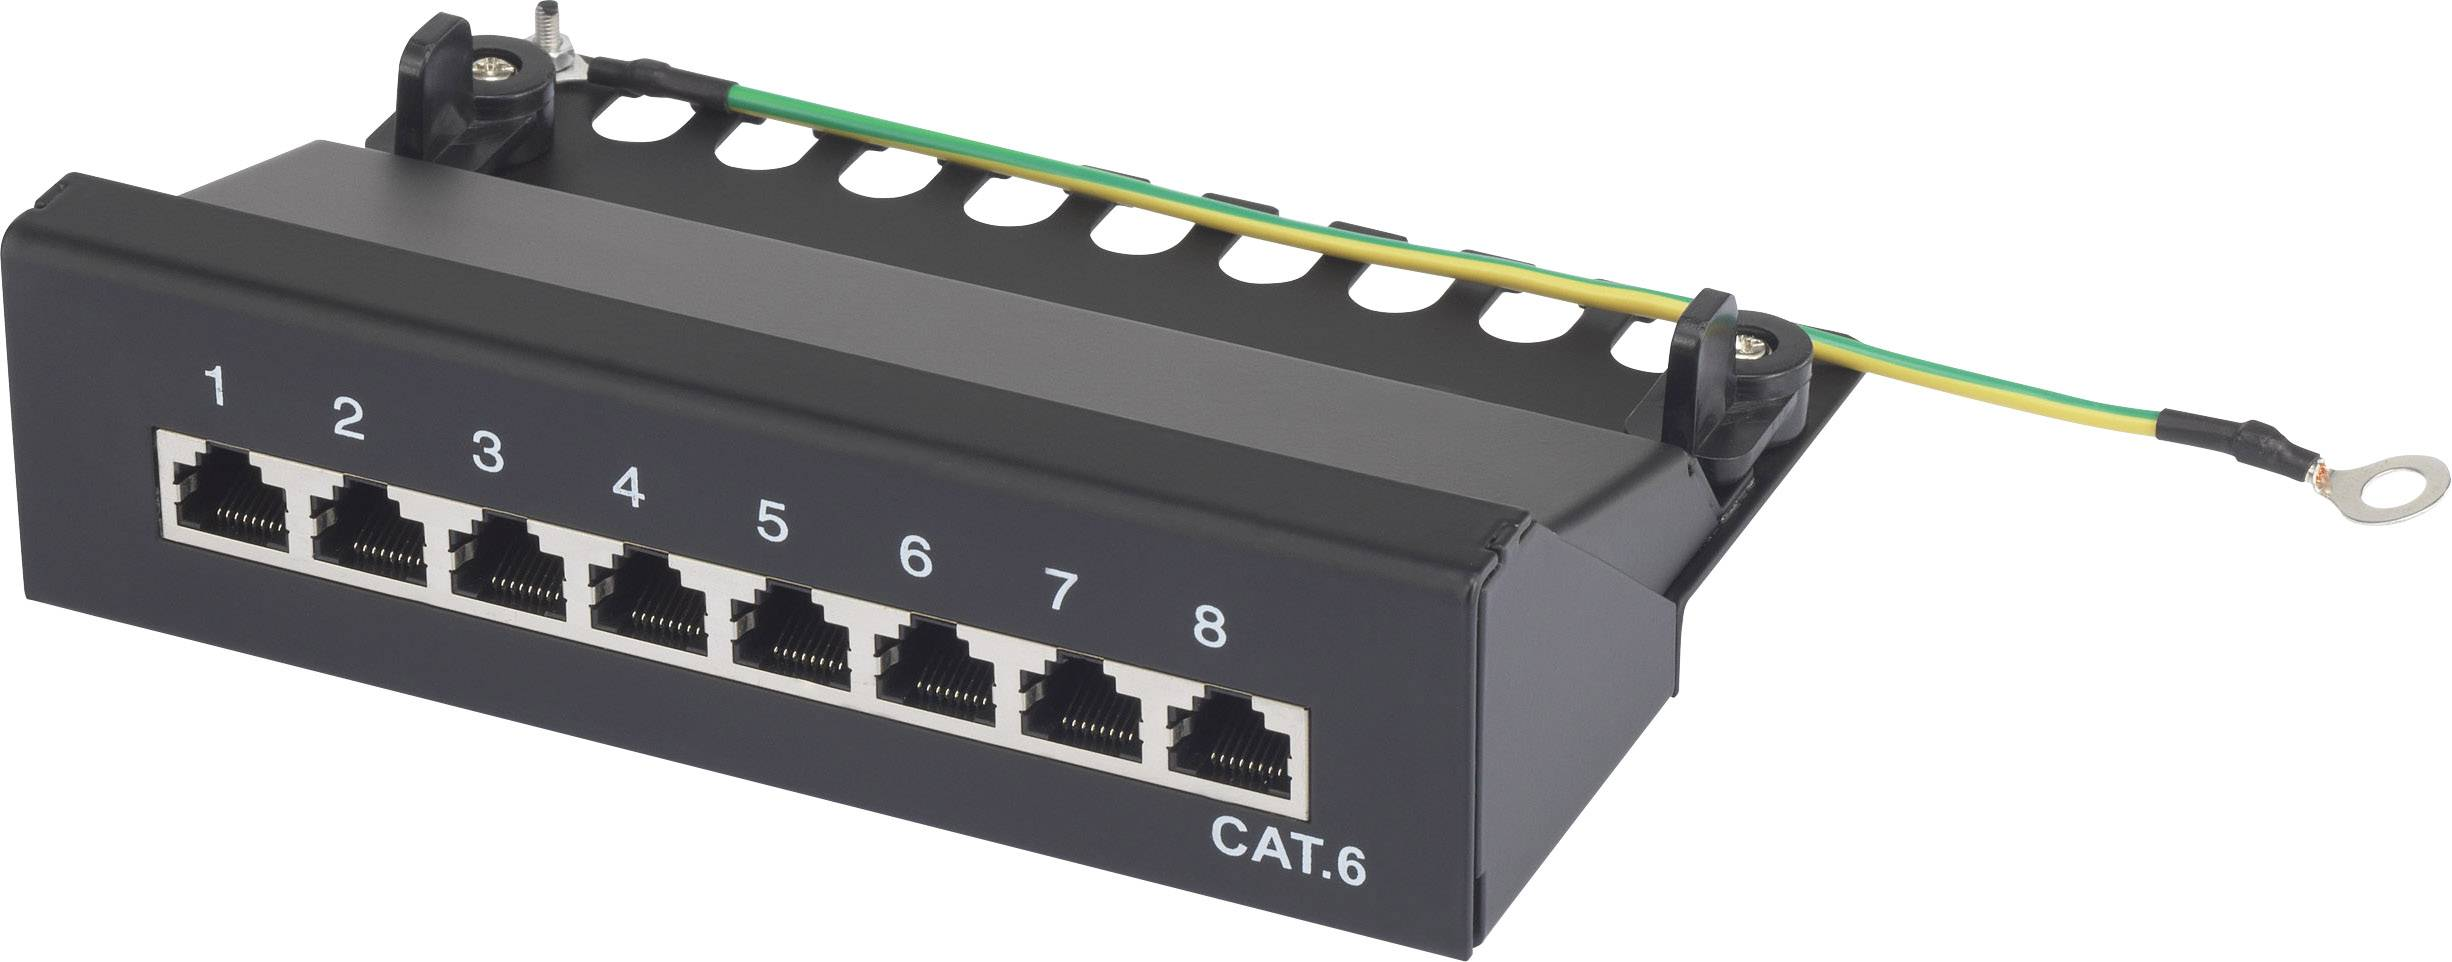 Sieťový Patchbox 8 portov Renkforce RF-4456722 CAT 6 1 U